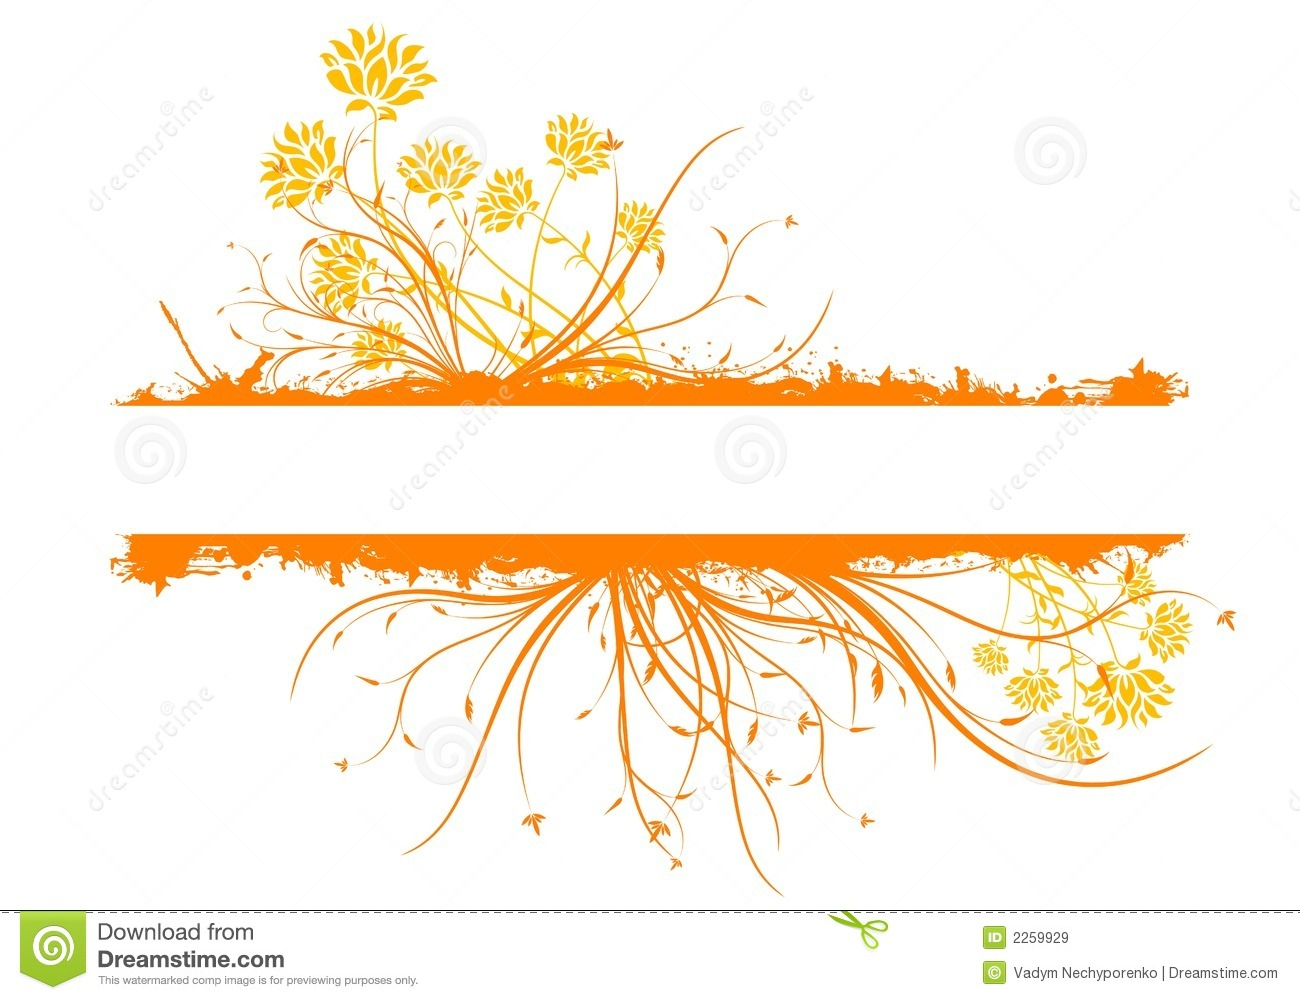 Decoration Image Of Grunge Text Decoration Stock Vector Image Of Branches 2259929